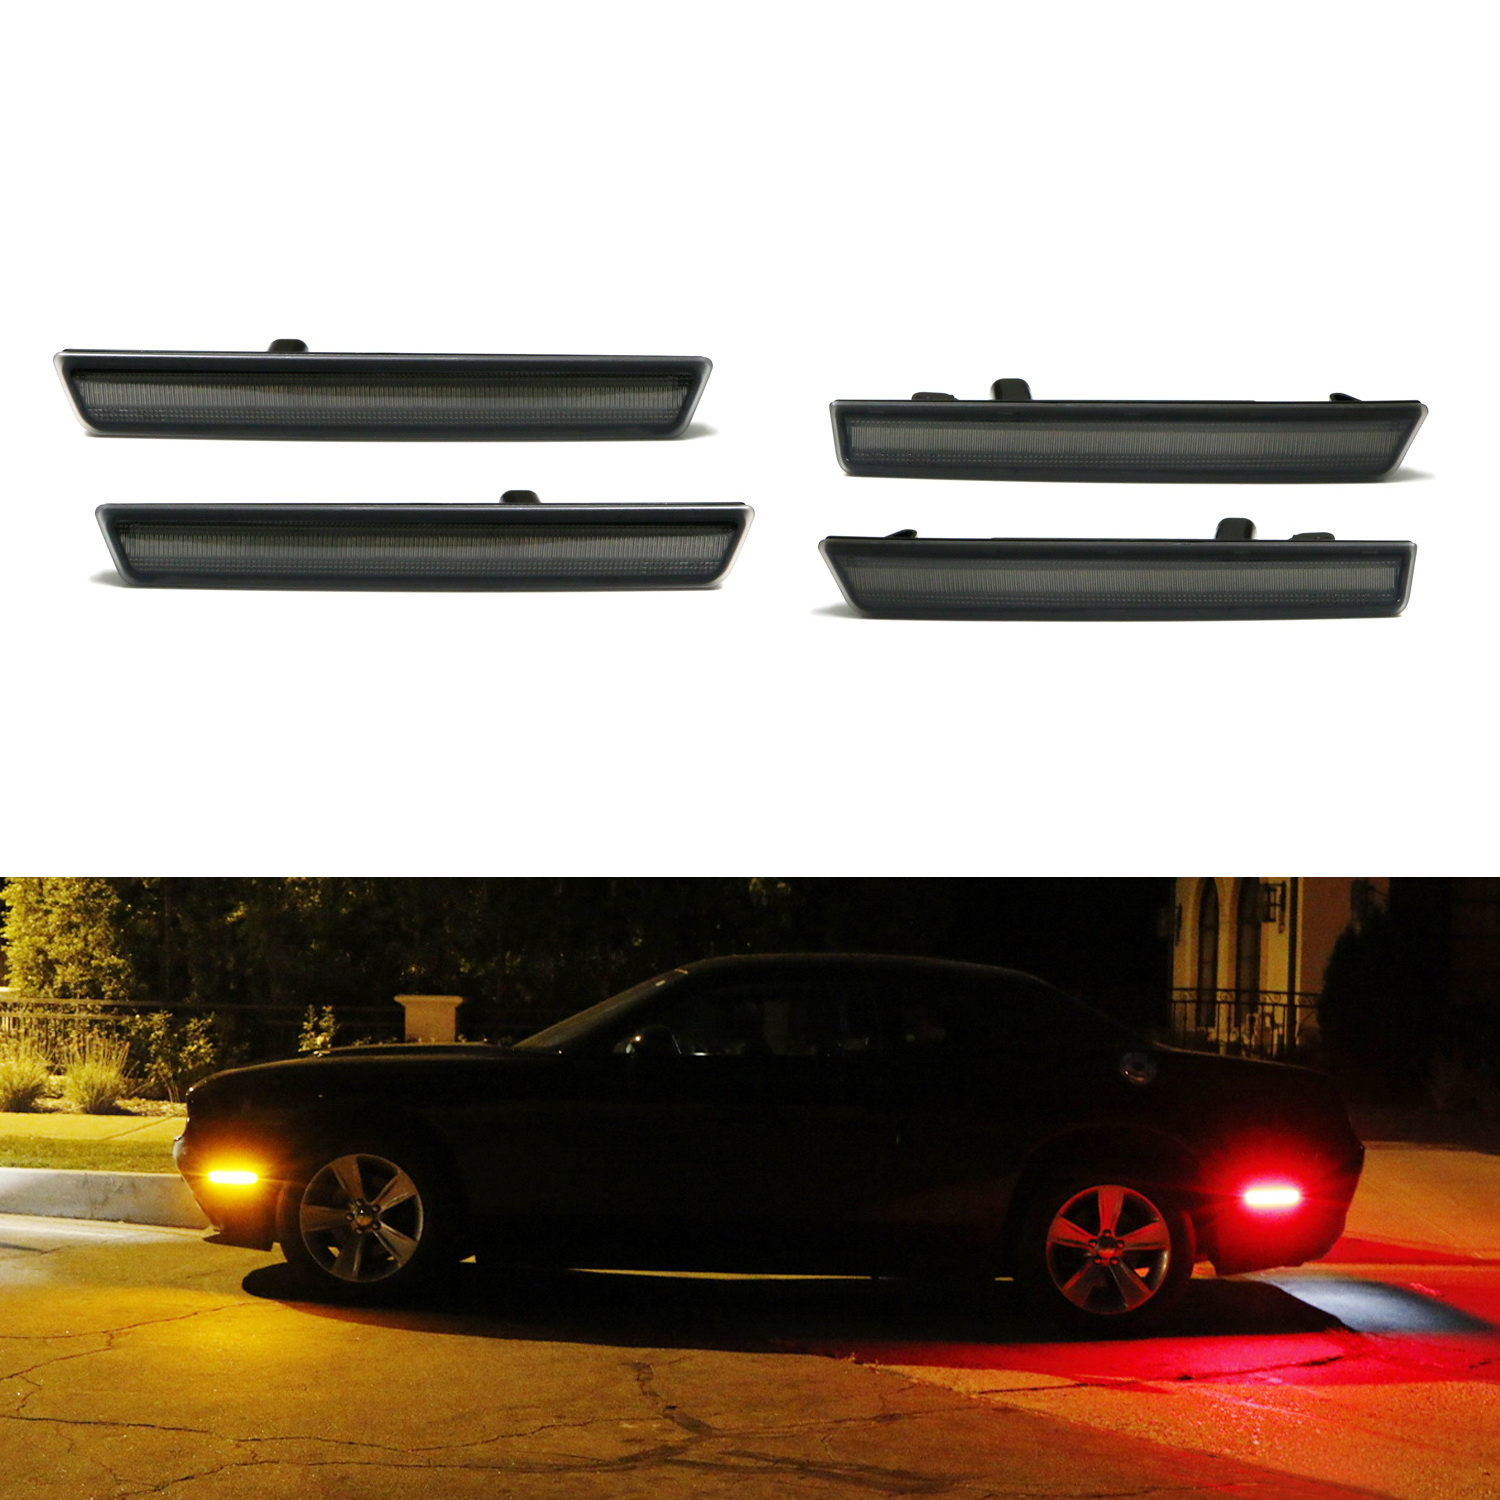 iJDMTOY (4) Smoked Lens Front & Rear Side Marker Lights with 180-SMD LED Diodes For 2015-2018 Dodge Challenger (Front: Amber LED, Rear: Red LED)